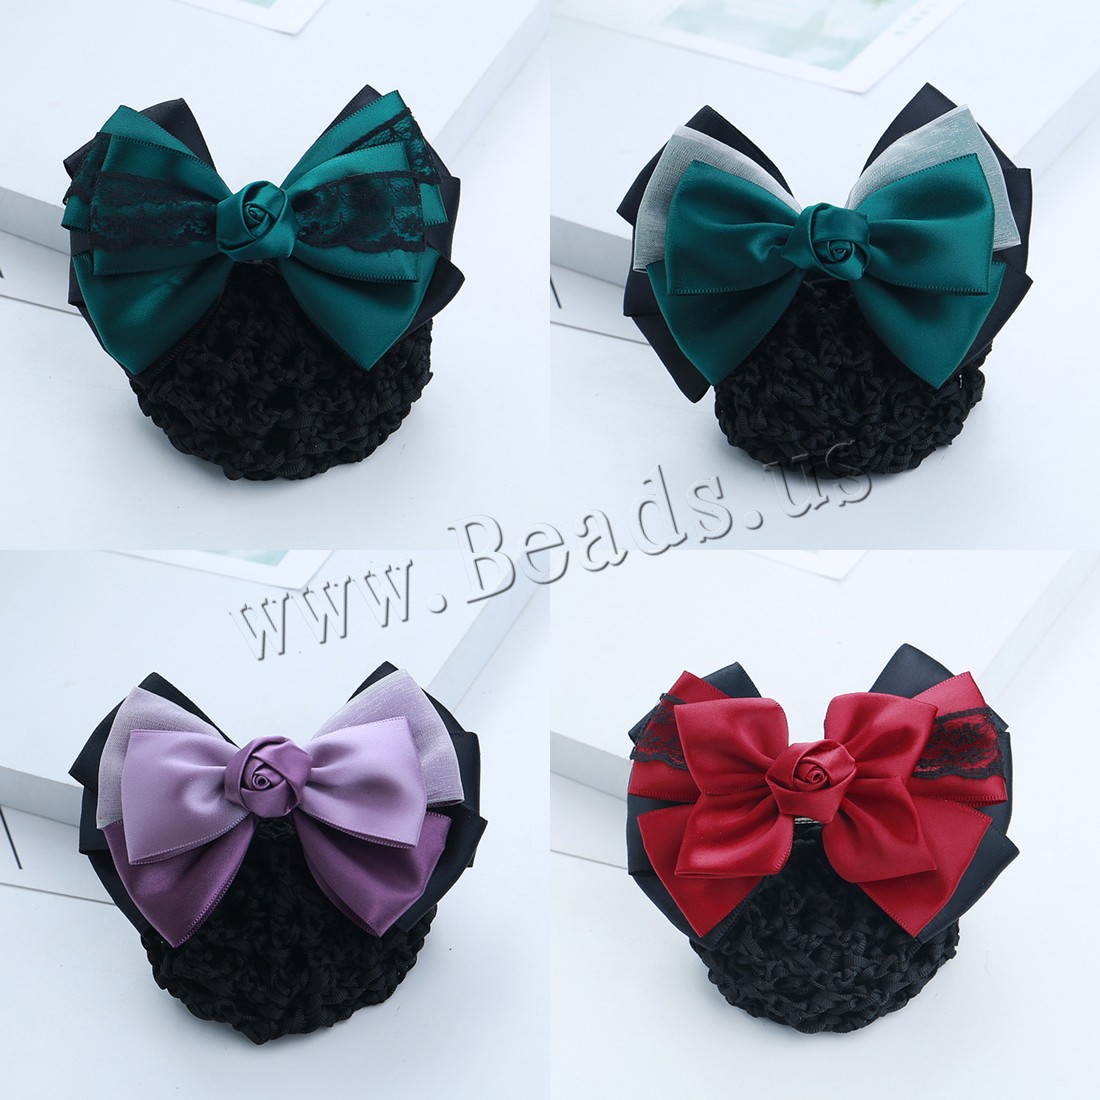 Buy Mixed Hair Accessories Polyester Lace & Iron different styles choice & woman & ribbon bowknot decoration nickel lead & cadmium free 115x80mm Sold PC